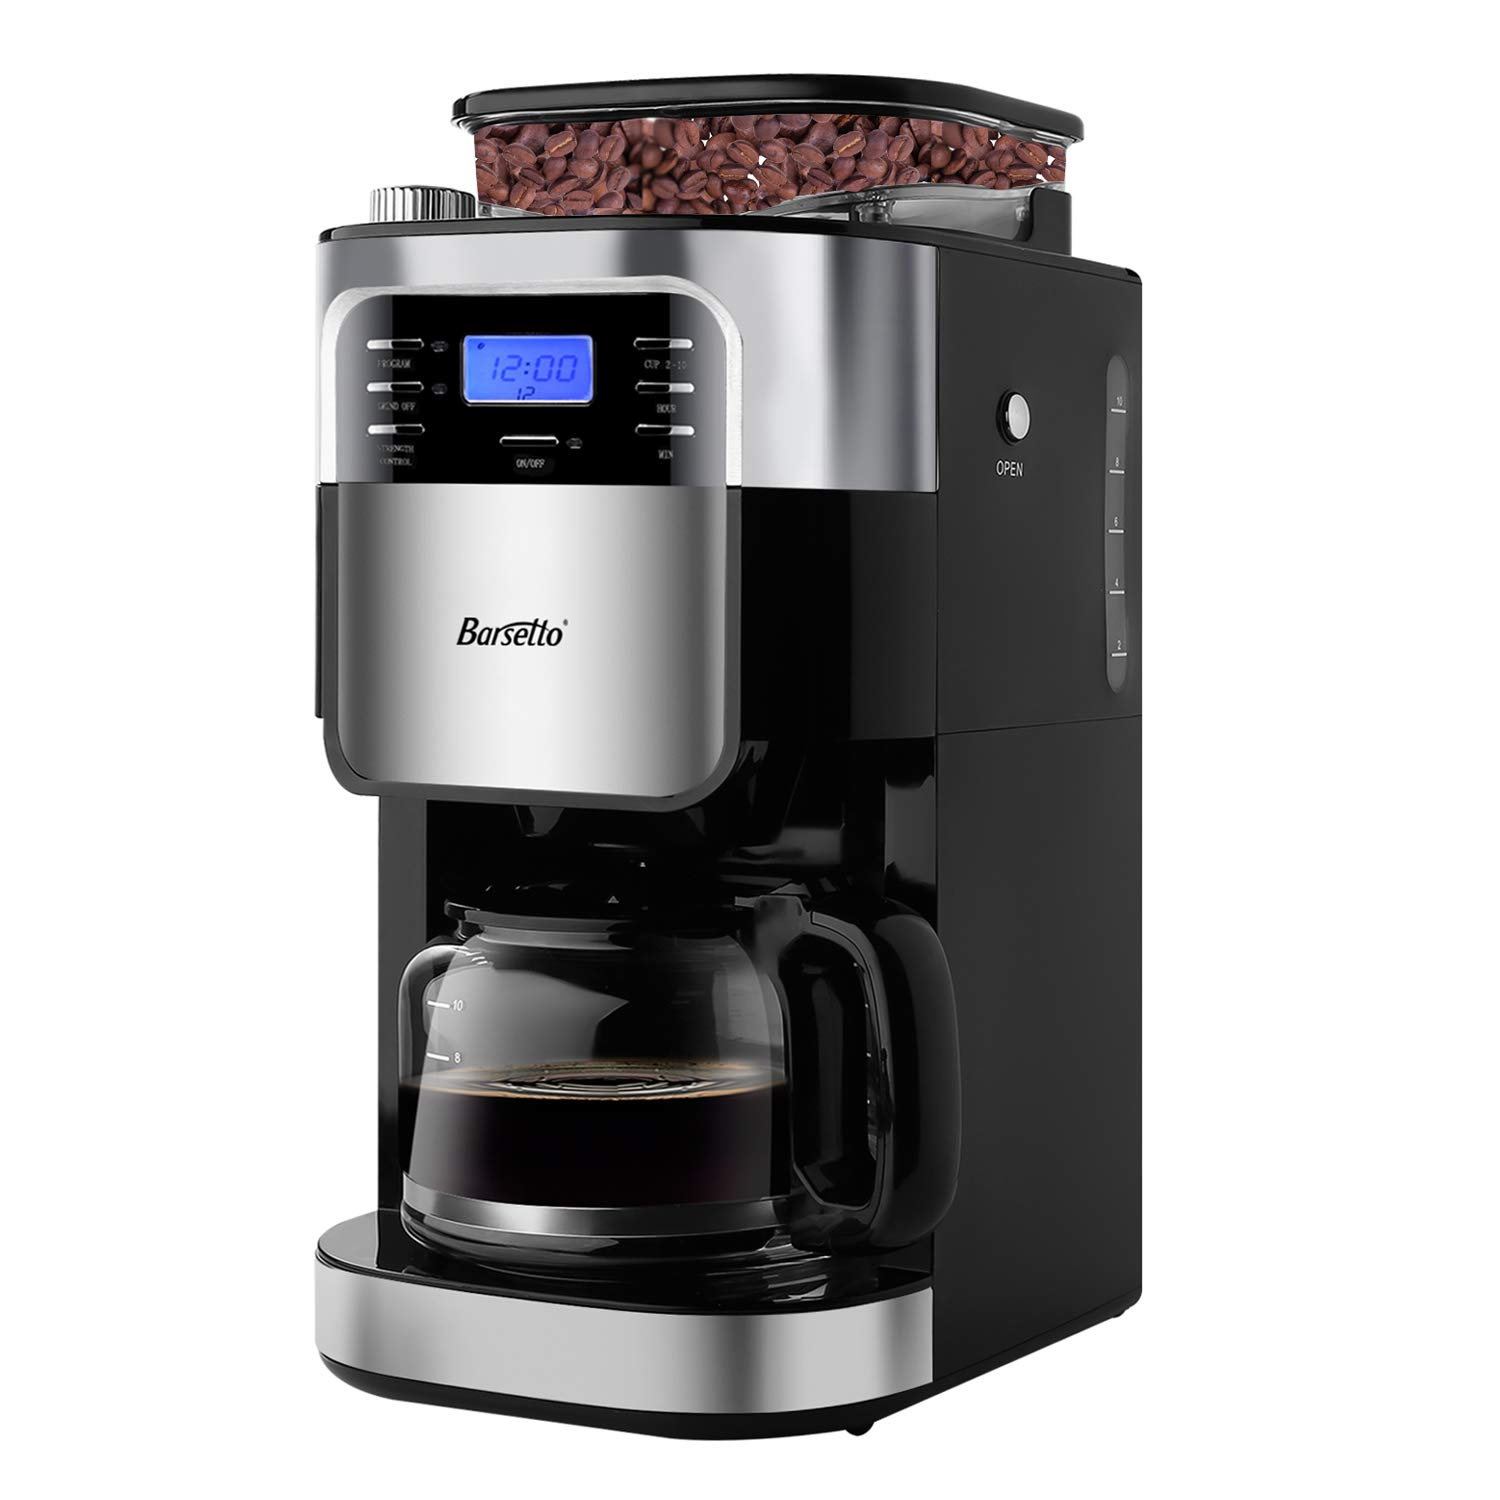 Barsetto Grind and Brew Automatic Coffee Maker with Digital Programmalbe Drip Coffee Machine,10-Cups,Black by Barsetto